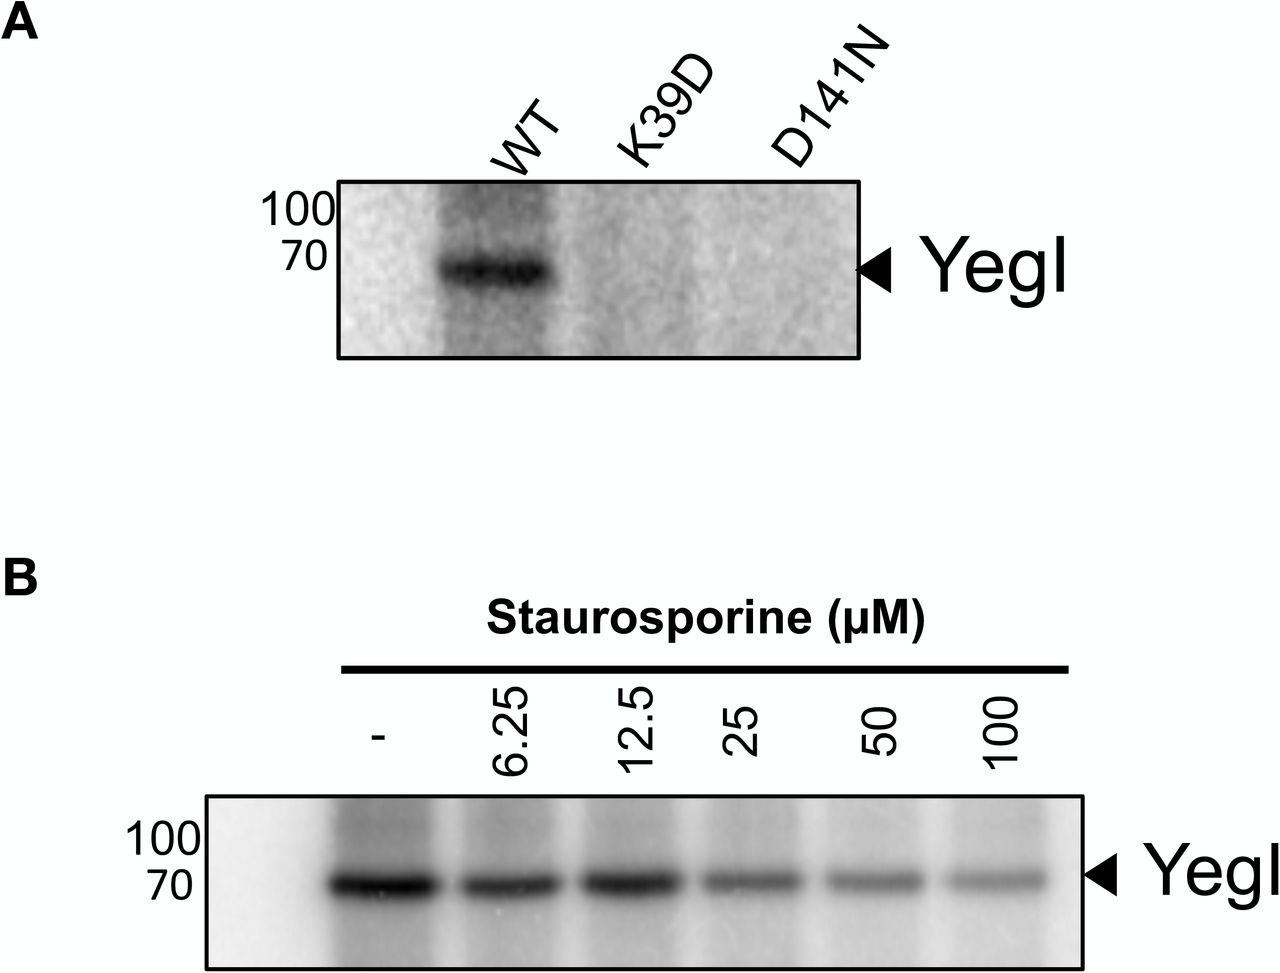 YegI is an active kinase (A) Kinase activity of YegI : Autophosphorylation reactions were carried out at 37 °C with 0.2 μM of YegI (WT or K39D or D141N) in kinase buffer (50 mM Tris pH 7.5, 50 mM KCl, 1 mM DTT, 10 mM MgCl 2 , 10 mM MnCl 2 , 200 μM cold ATP and 5 μCi γ -[ 32 P]ATP. Reactions were stopped at t=30 mins and run on 12 % SDS-PAGE followed by autoradiography. Molecular weights (kDa) are indicated on the right of the gel. (B) Sensitivity to staurosporine: Autophosphorylation reactions were carried out at 37 °C with 1 μM of YegI (WT) in kinase buffer without cold ATP. Different concentrations of staurosporine (μM) was added to the reaction at indicated concentrations. Reactions were stopped at t=30 mins and run on 12% SDS-PAGE followed by autoradiography. Molecular weights are indicated on the right of the gel.